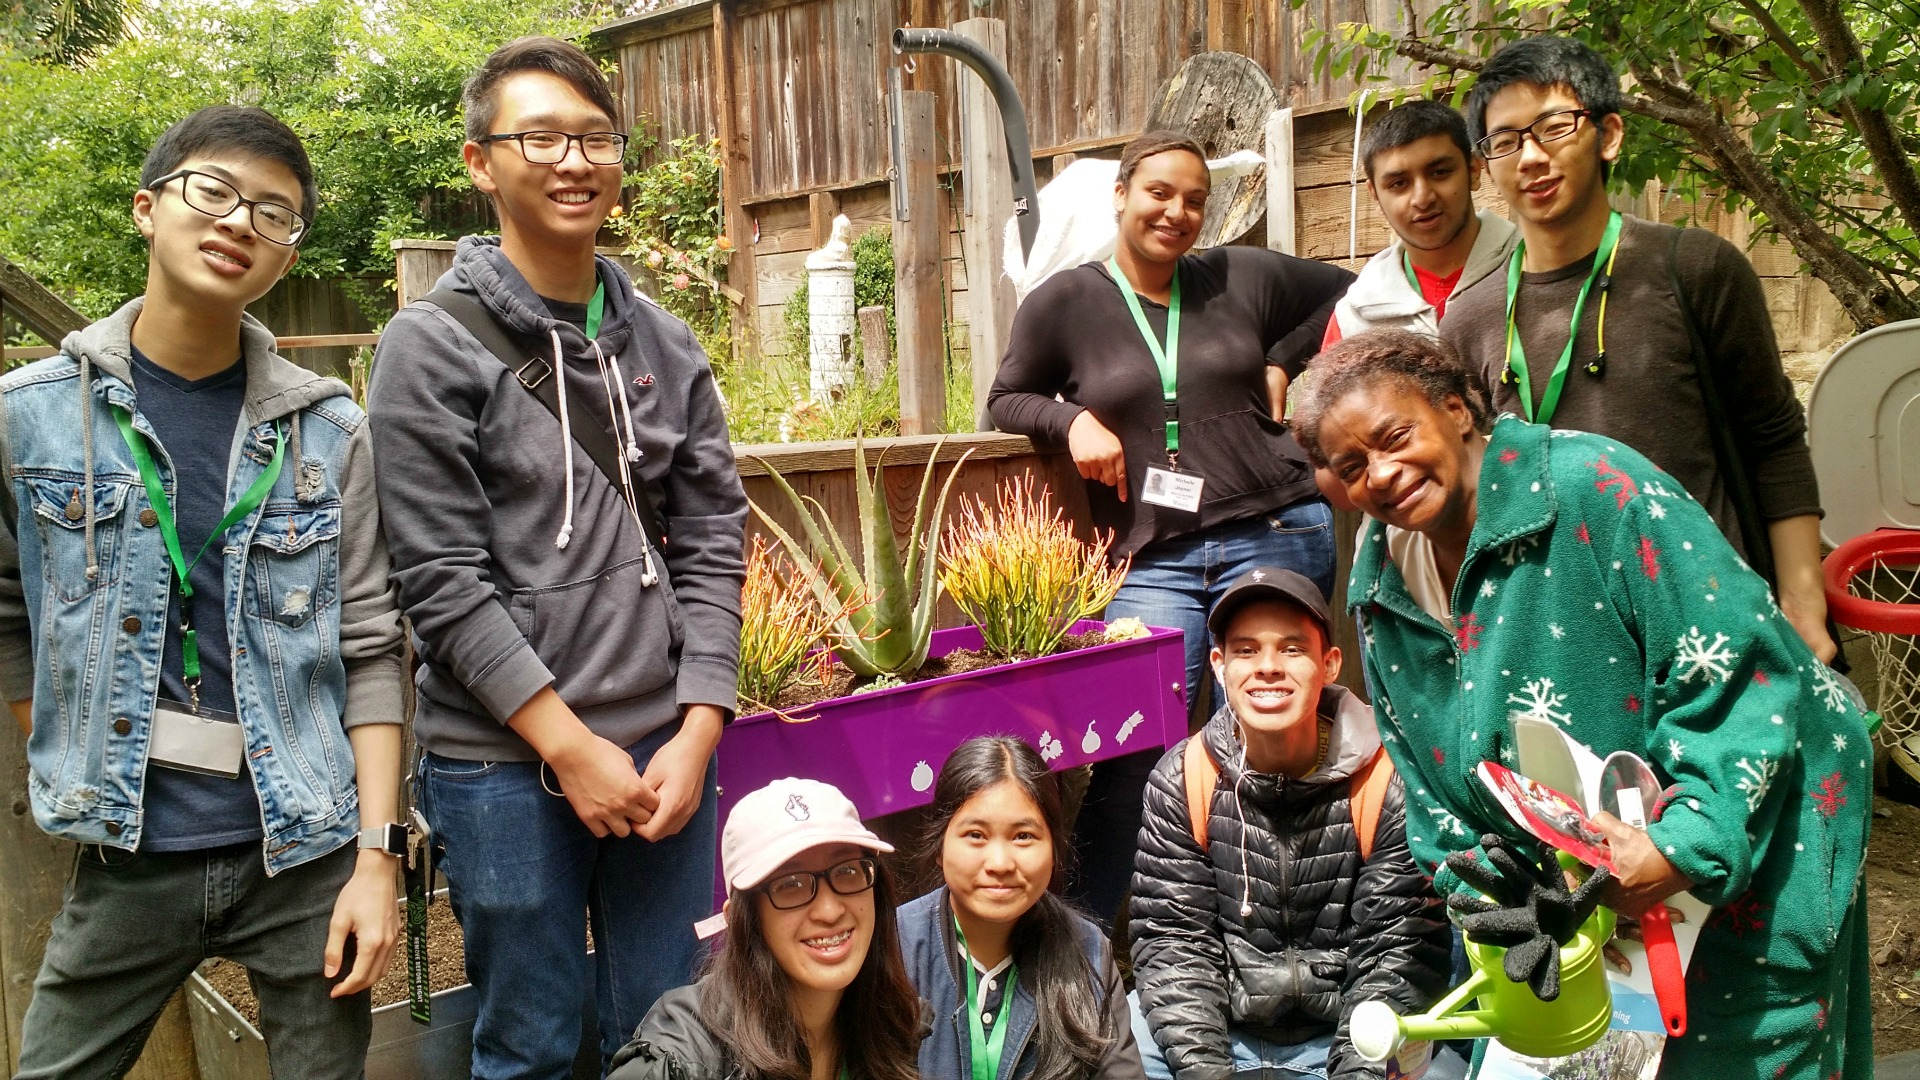 Participants in CommunityGrows' BEETS teen entrepreneur program learn how to build and maintain gardens, as well as other career development skills.